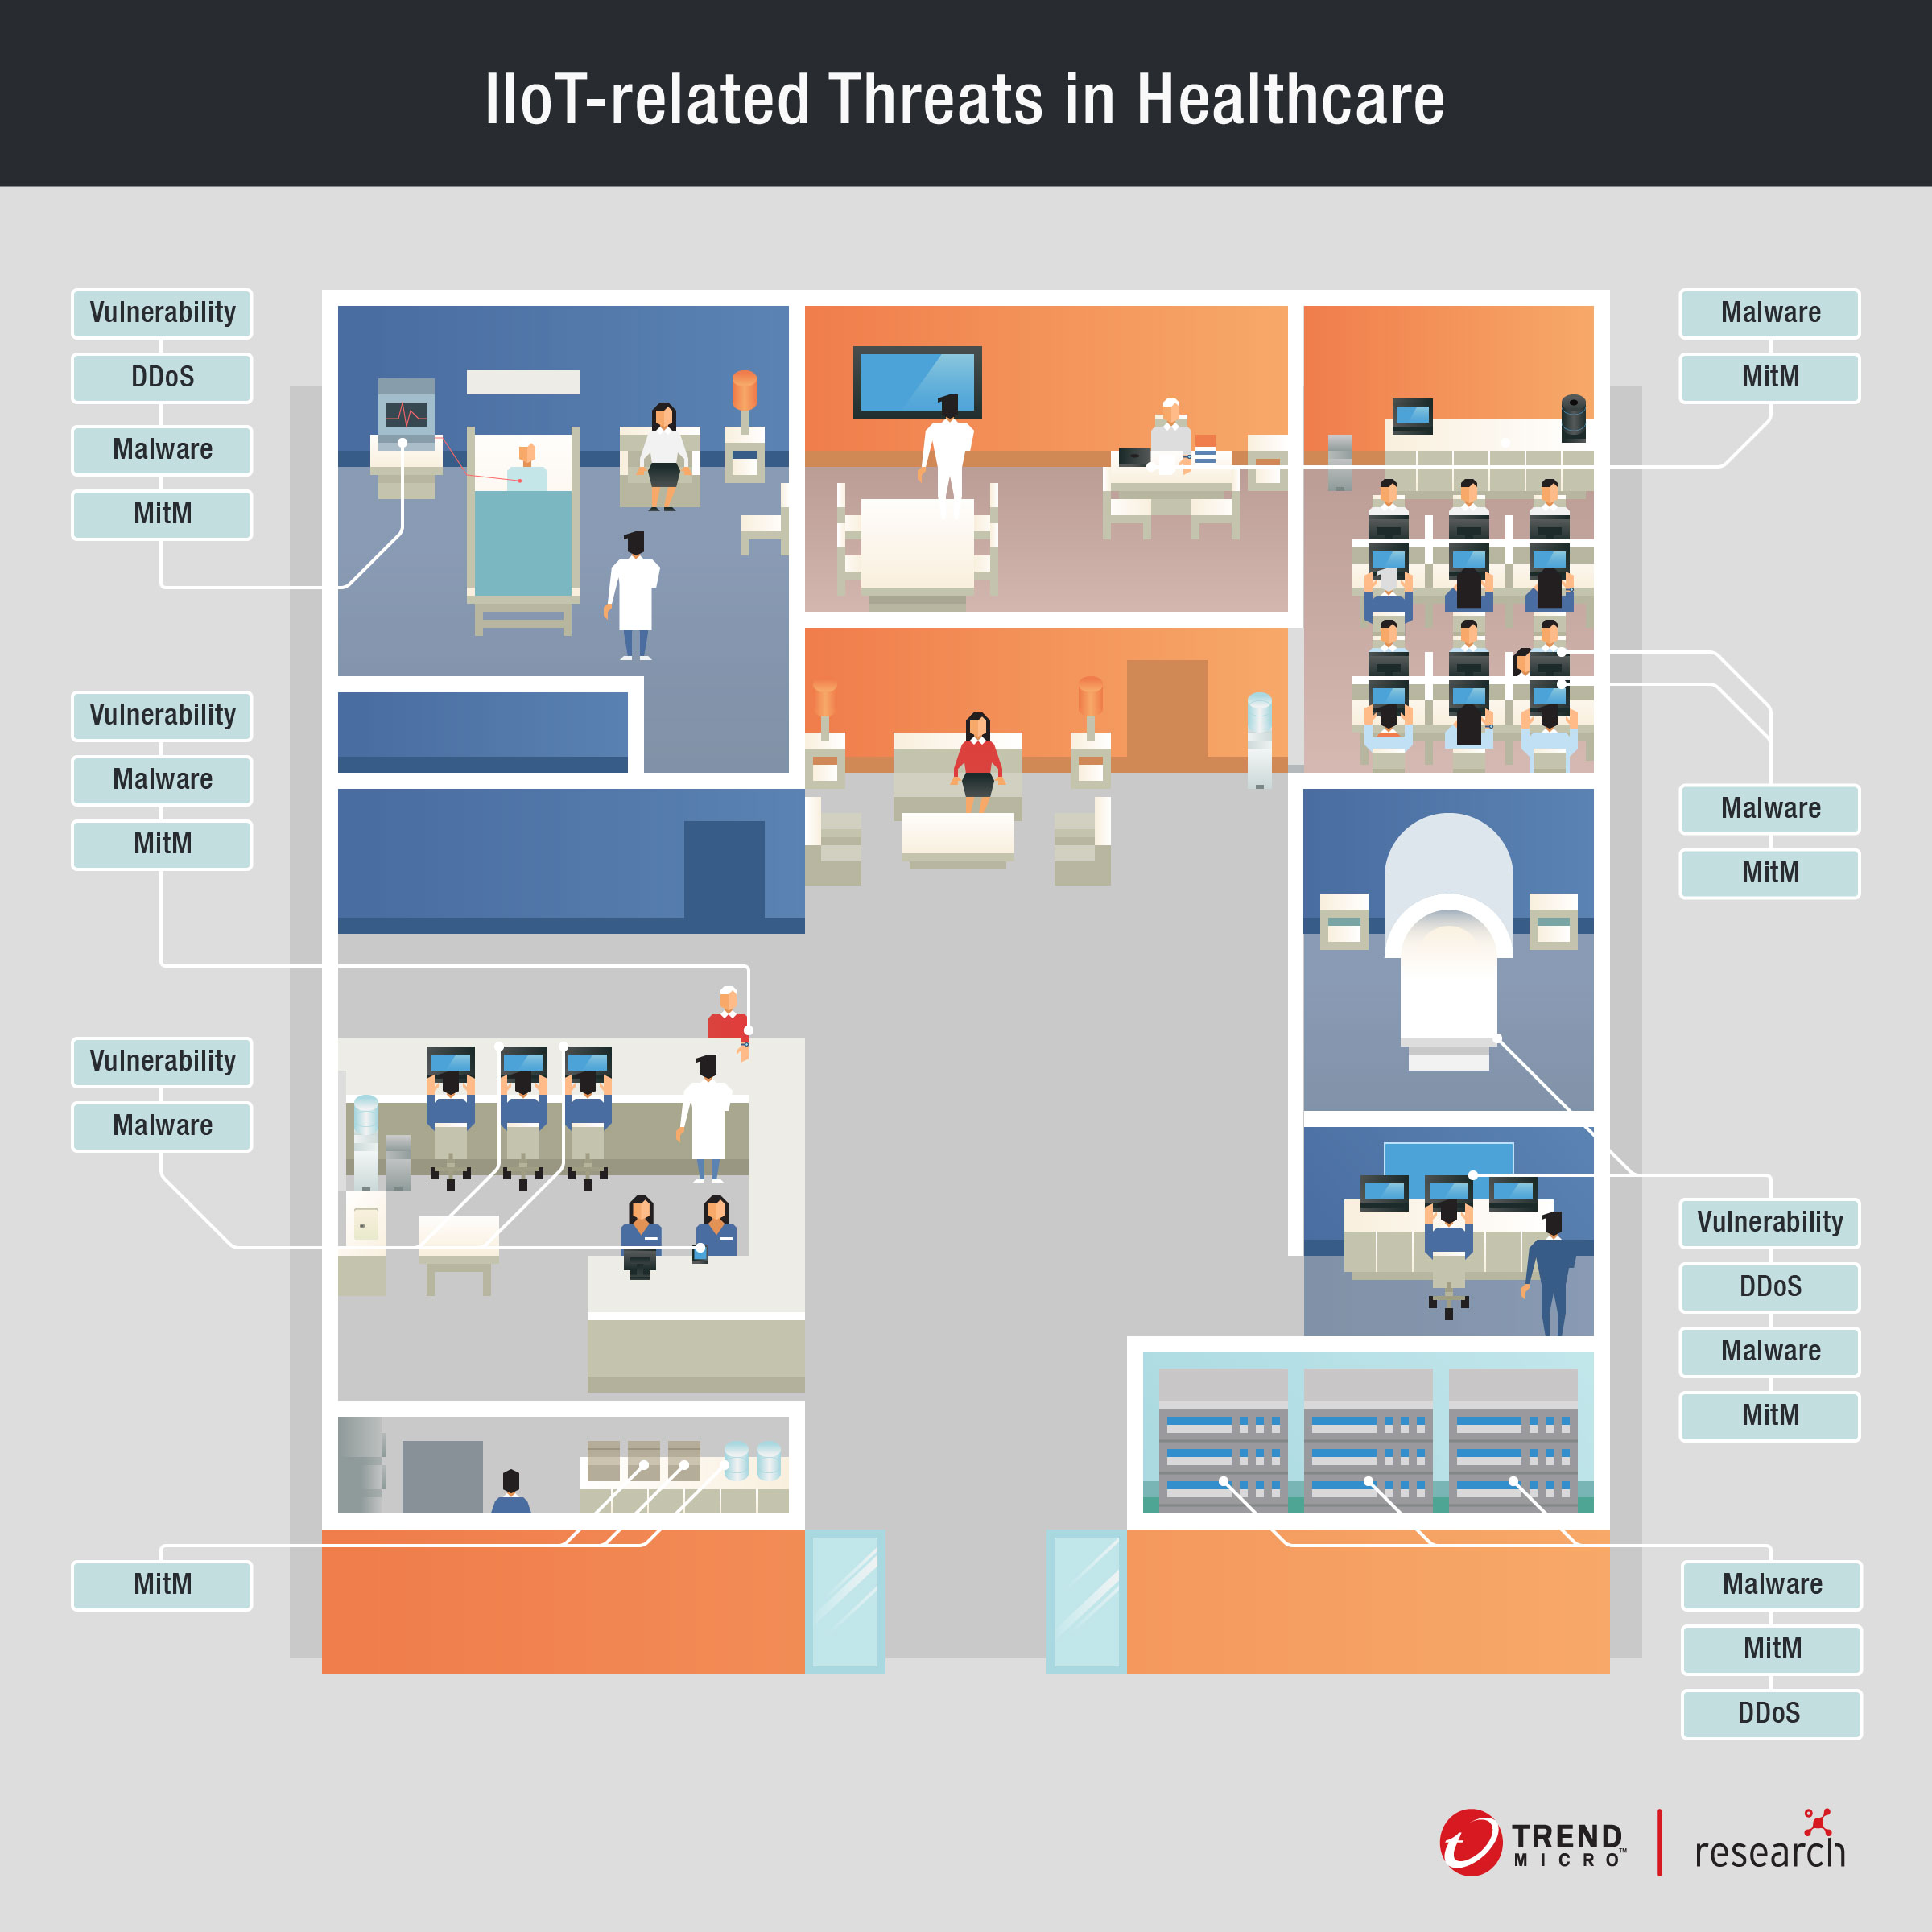 Addressing IIoT Risks in Healthcare